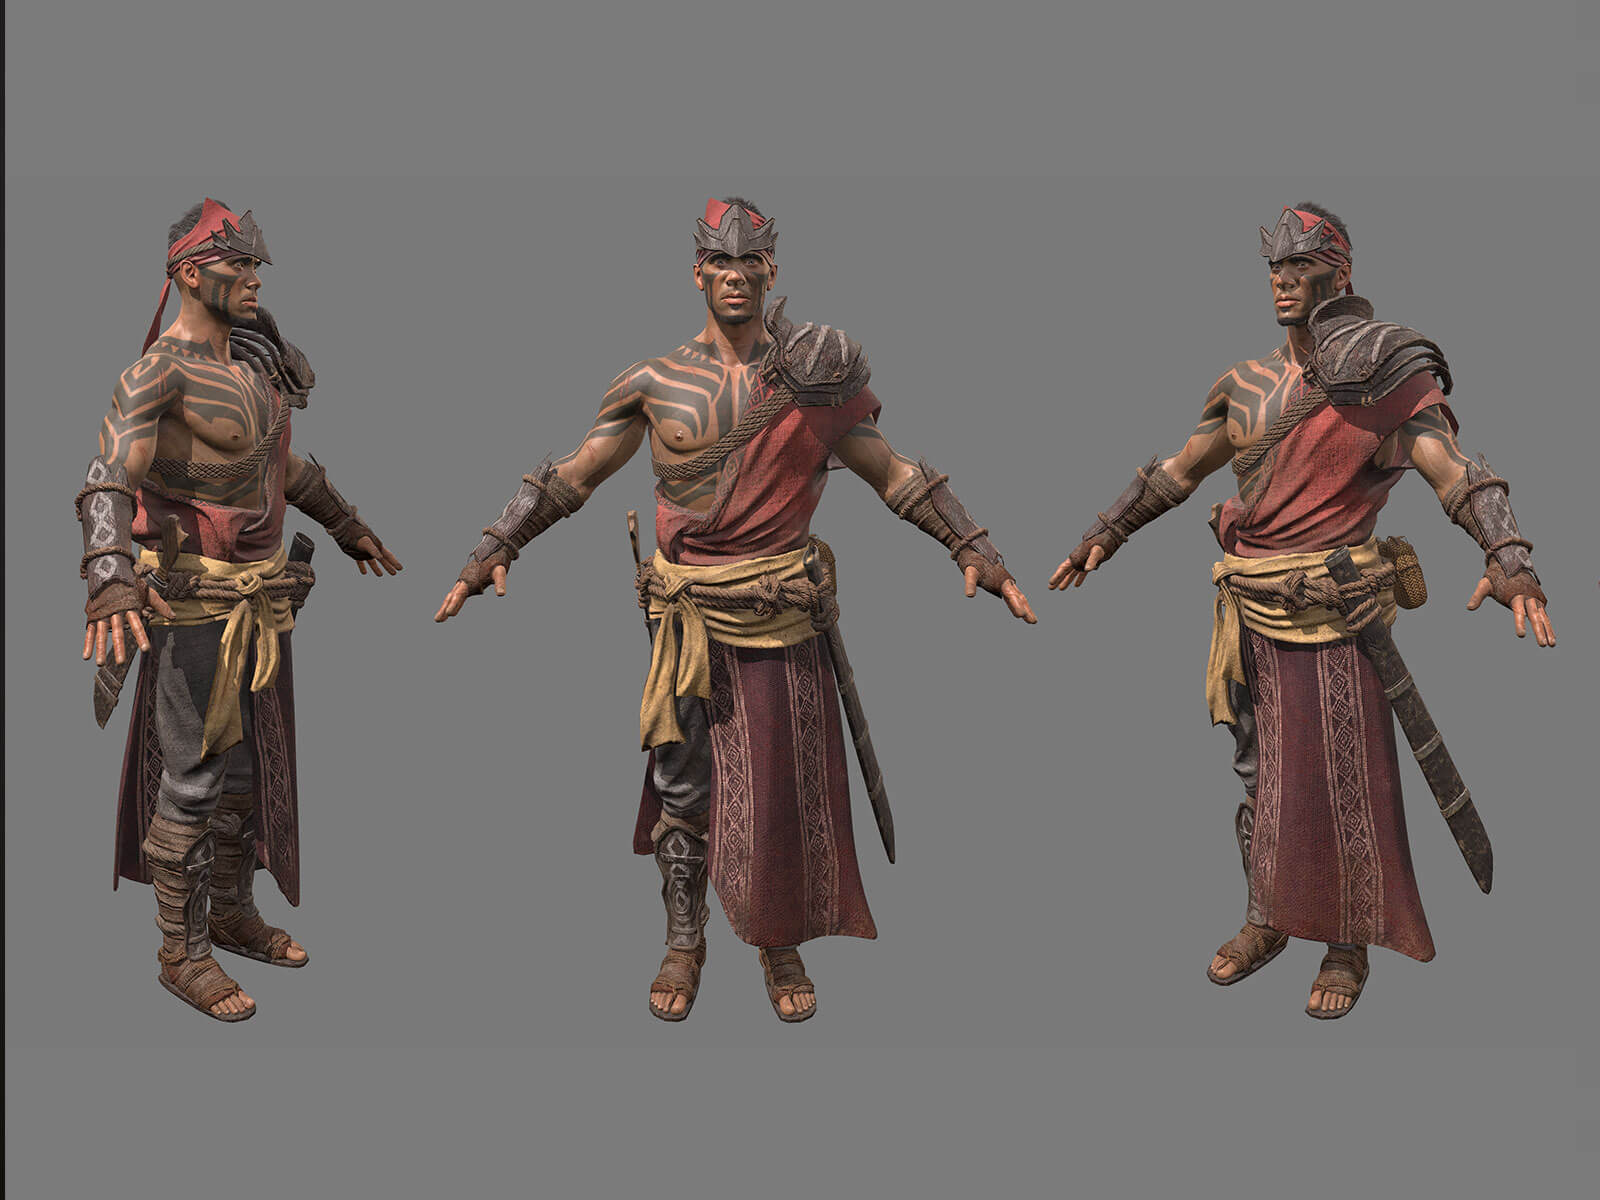 Turnaround of man clothed as warrior